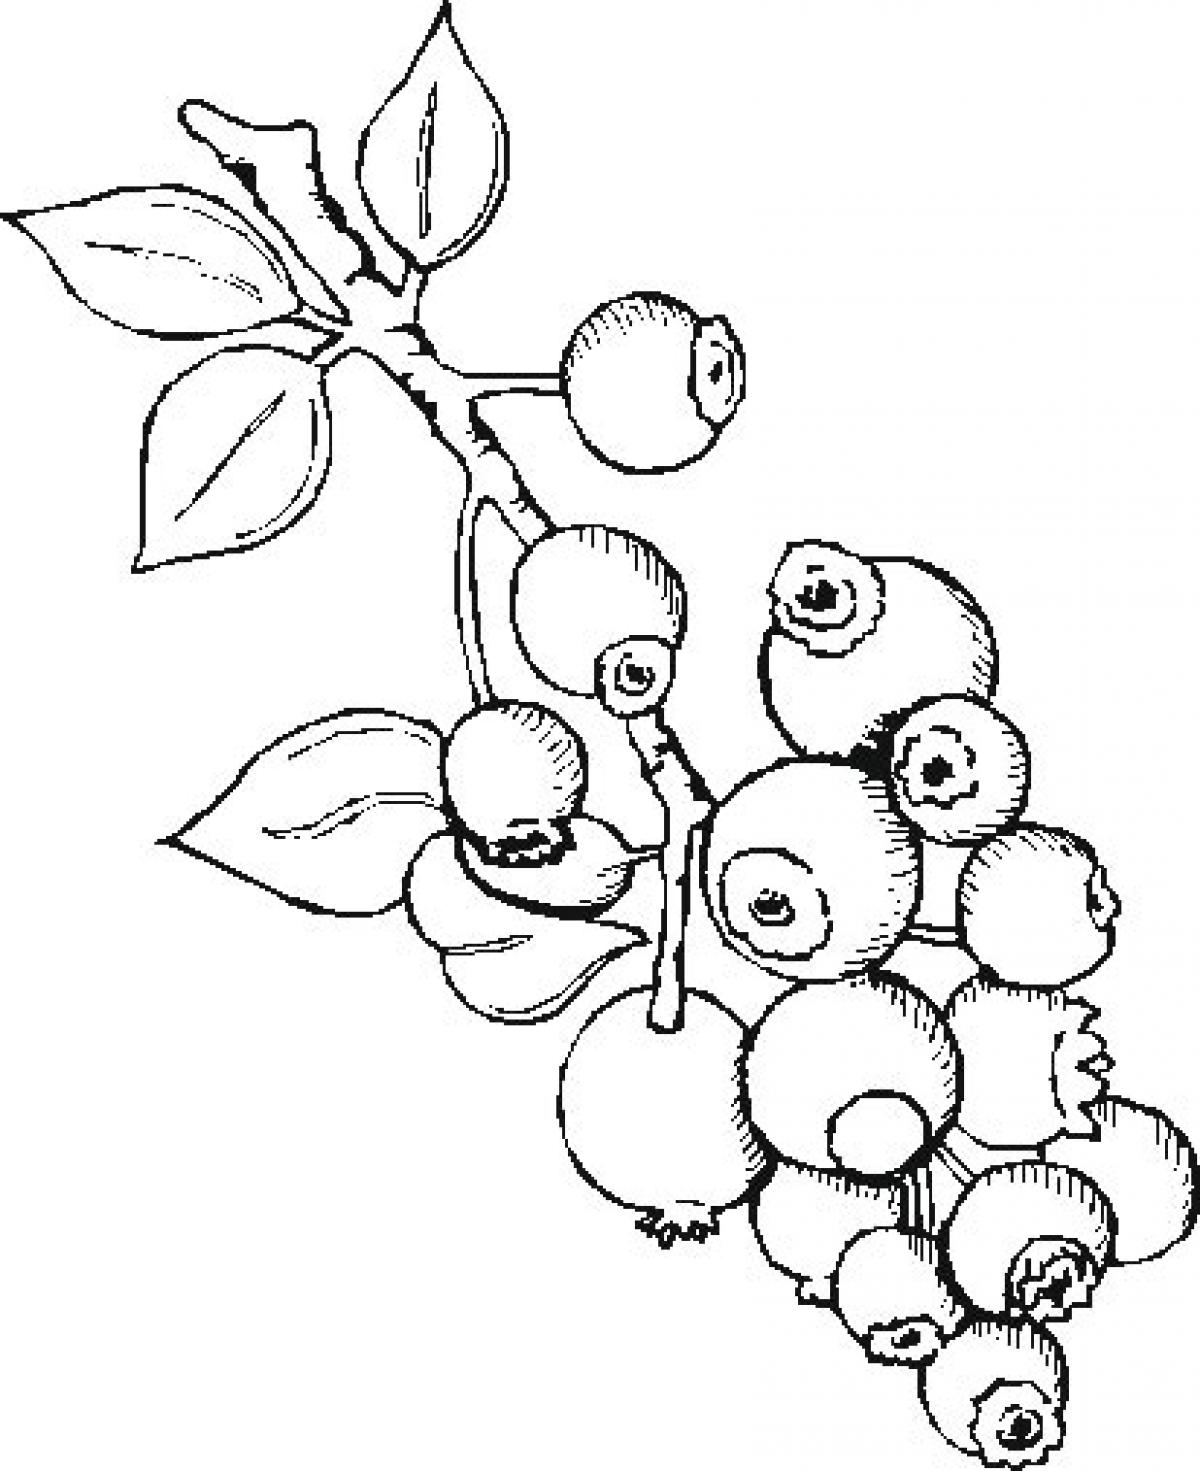 Blueberry bush drawing at free for for Blueberry coloring page